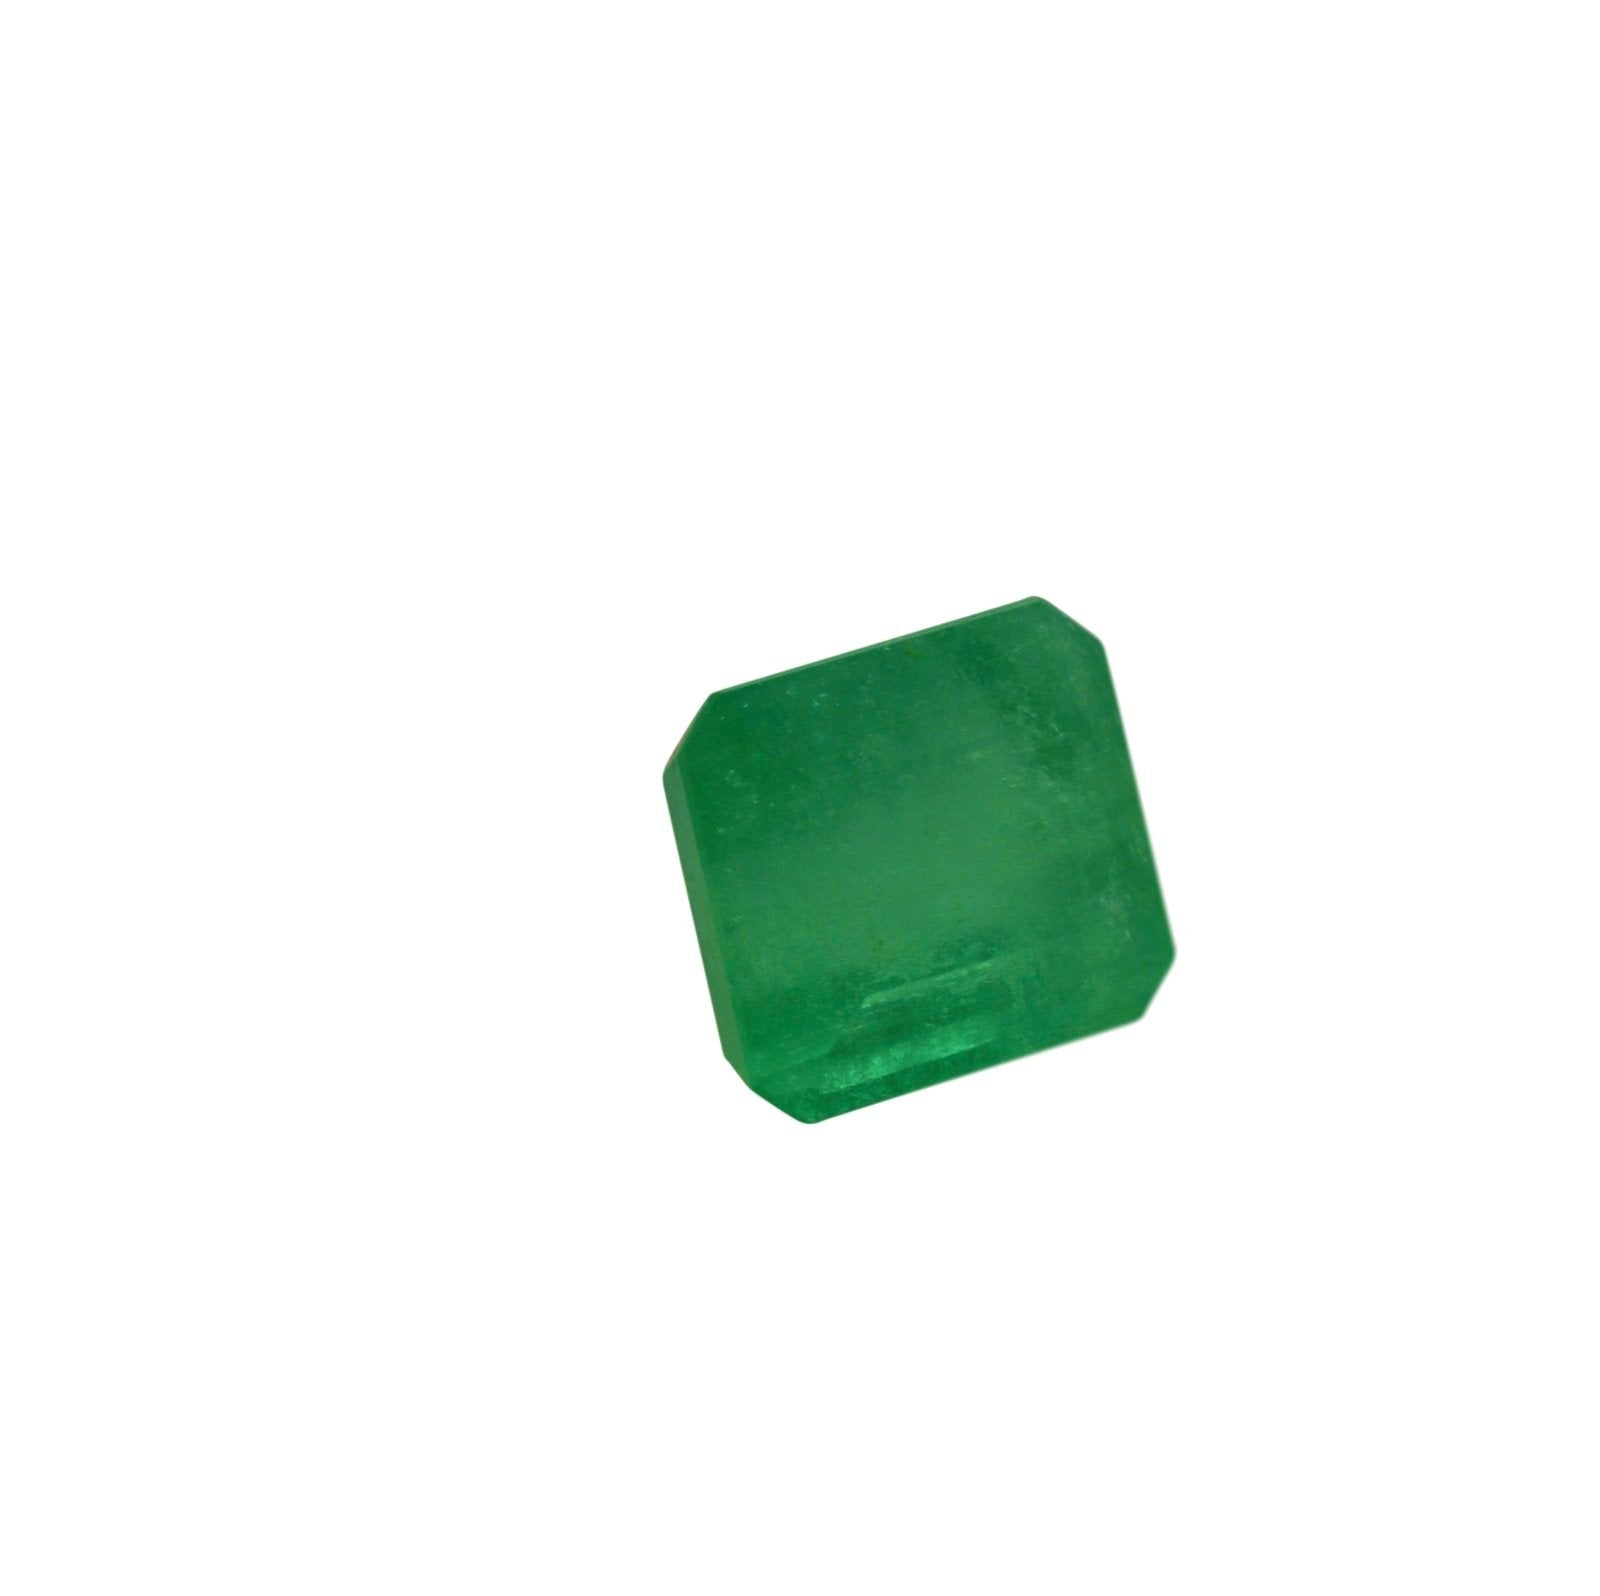 find company emeralds square pin by emerald the theemeraldcompany and on rectangular this more or cut